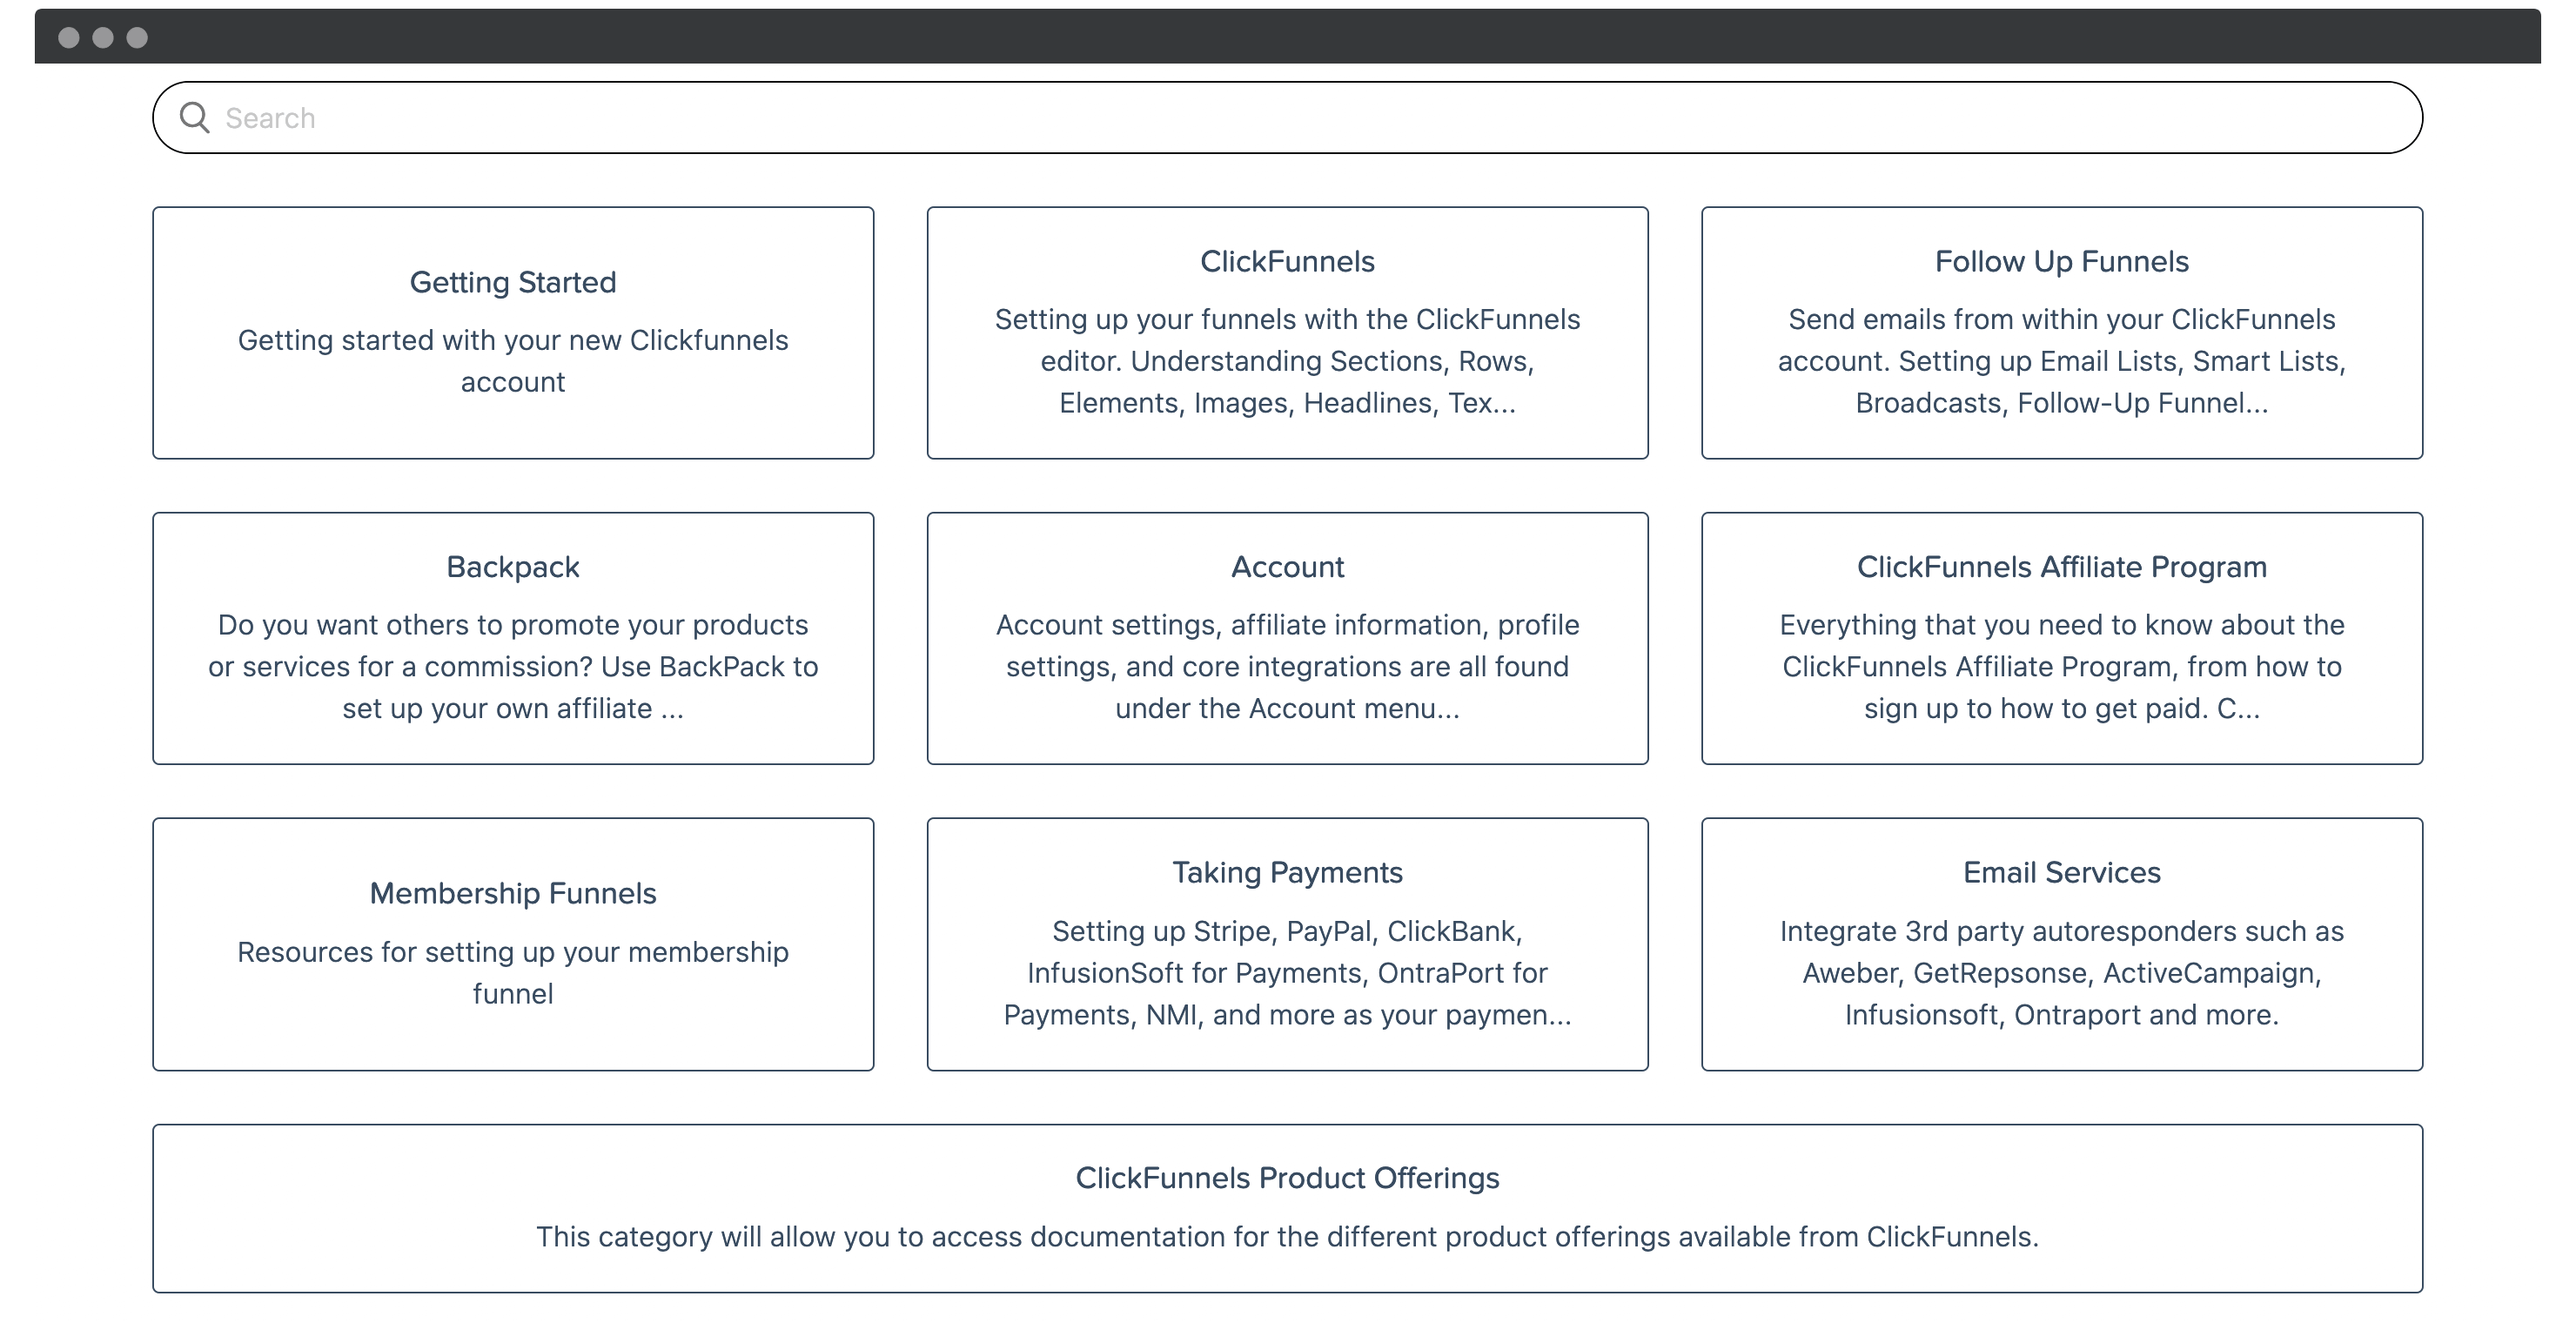 ClickFunnels' knowledge base.